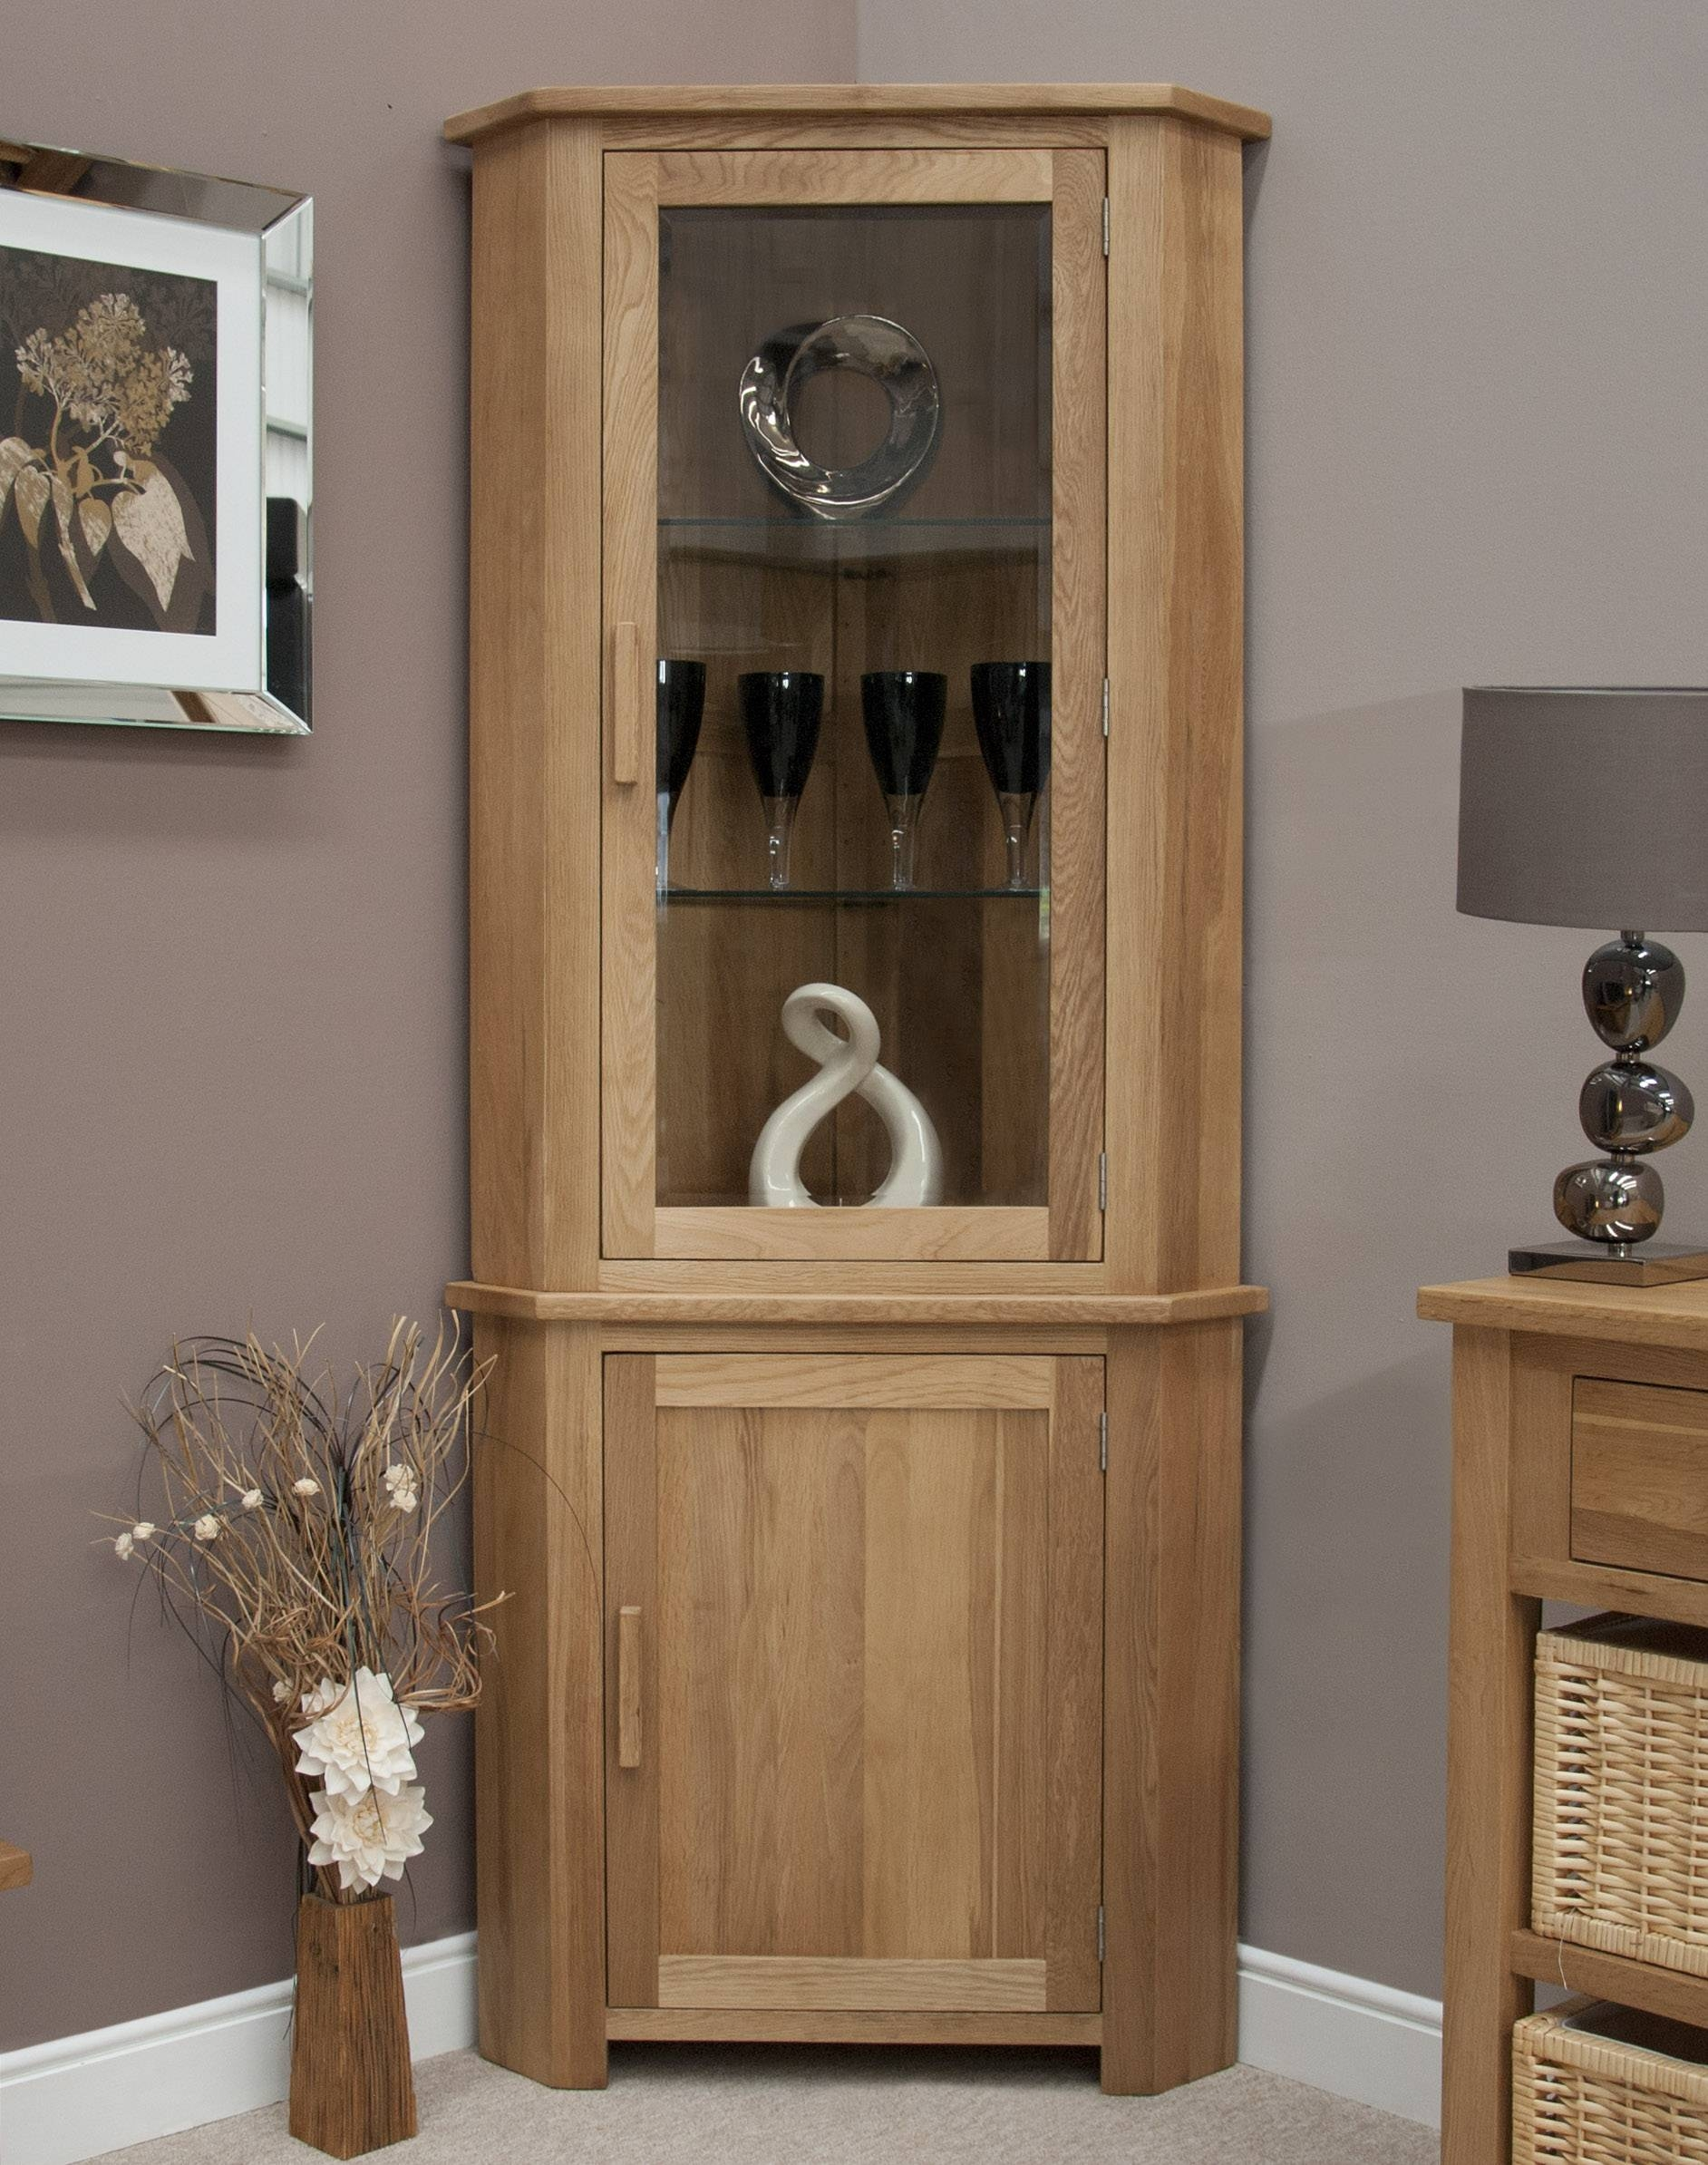 Fantastic Furniture | Pine And Oak | Furniture Workshoppe within Corner Sideboard Units (Image 18 of 30)